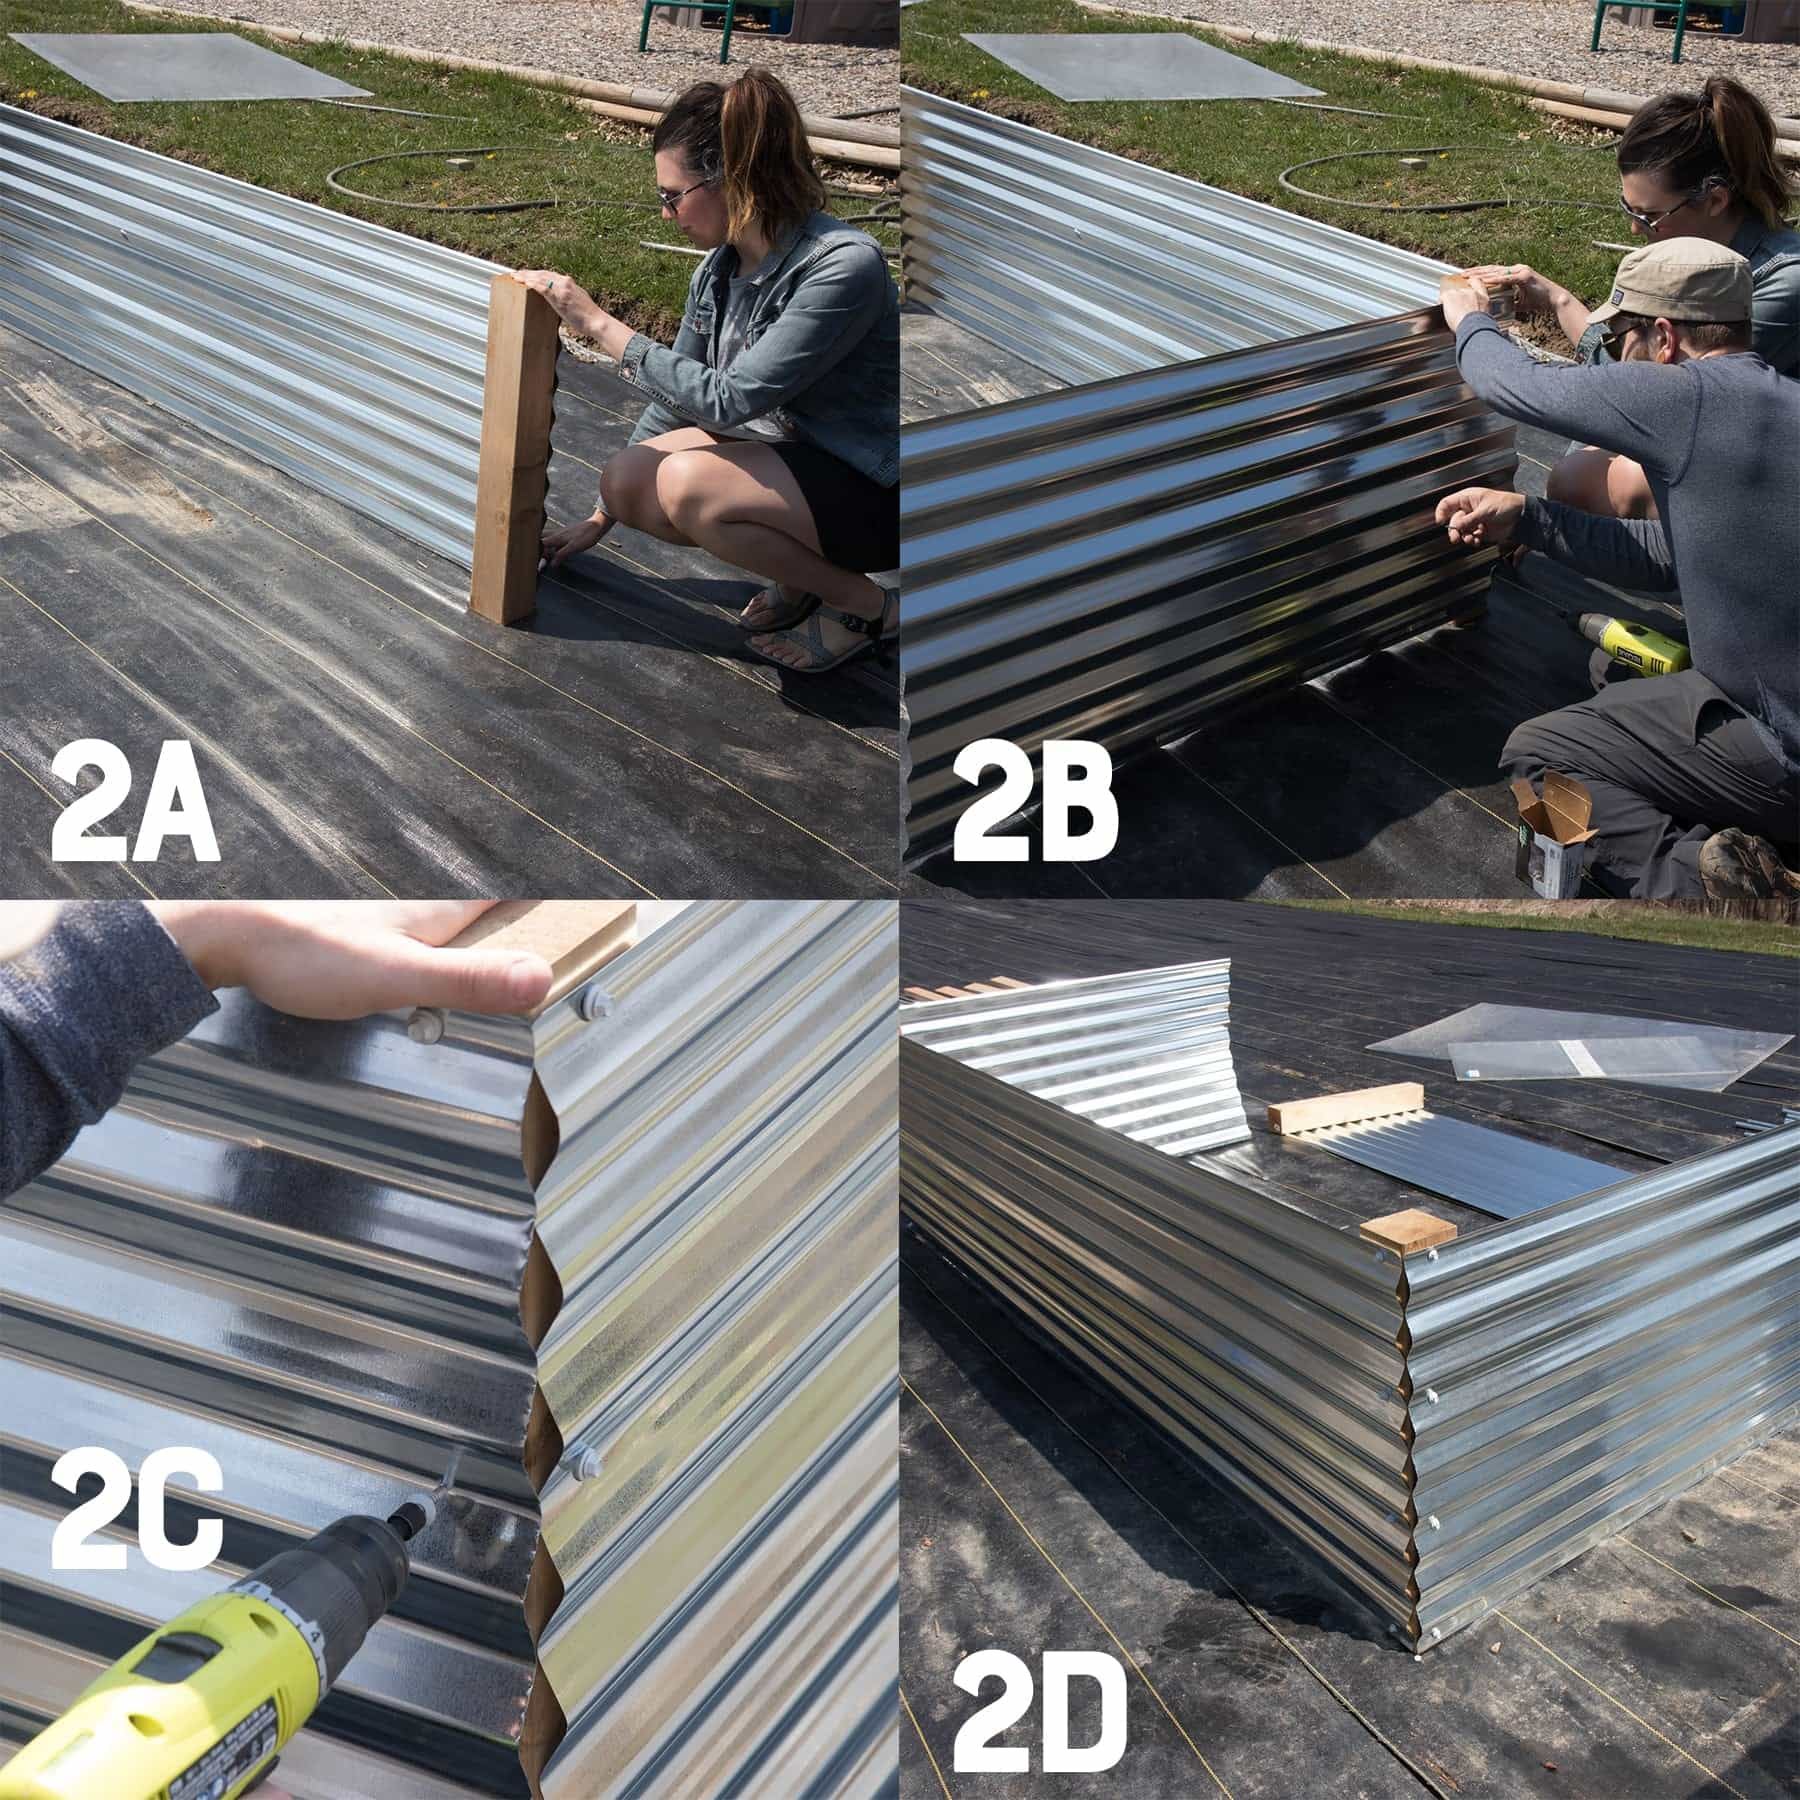 Four image collage of building the second and third sides of a galvanized steel raised bed